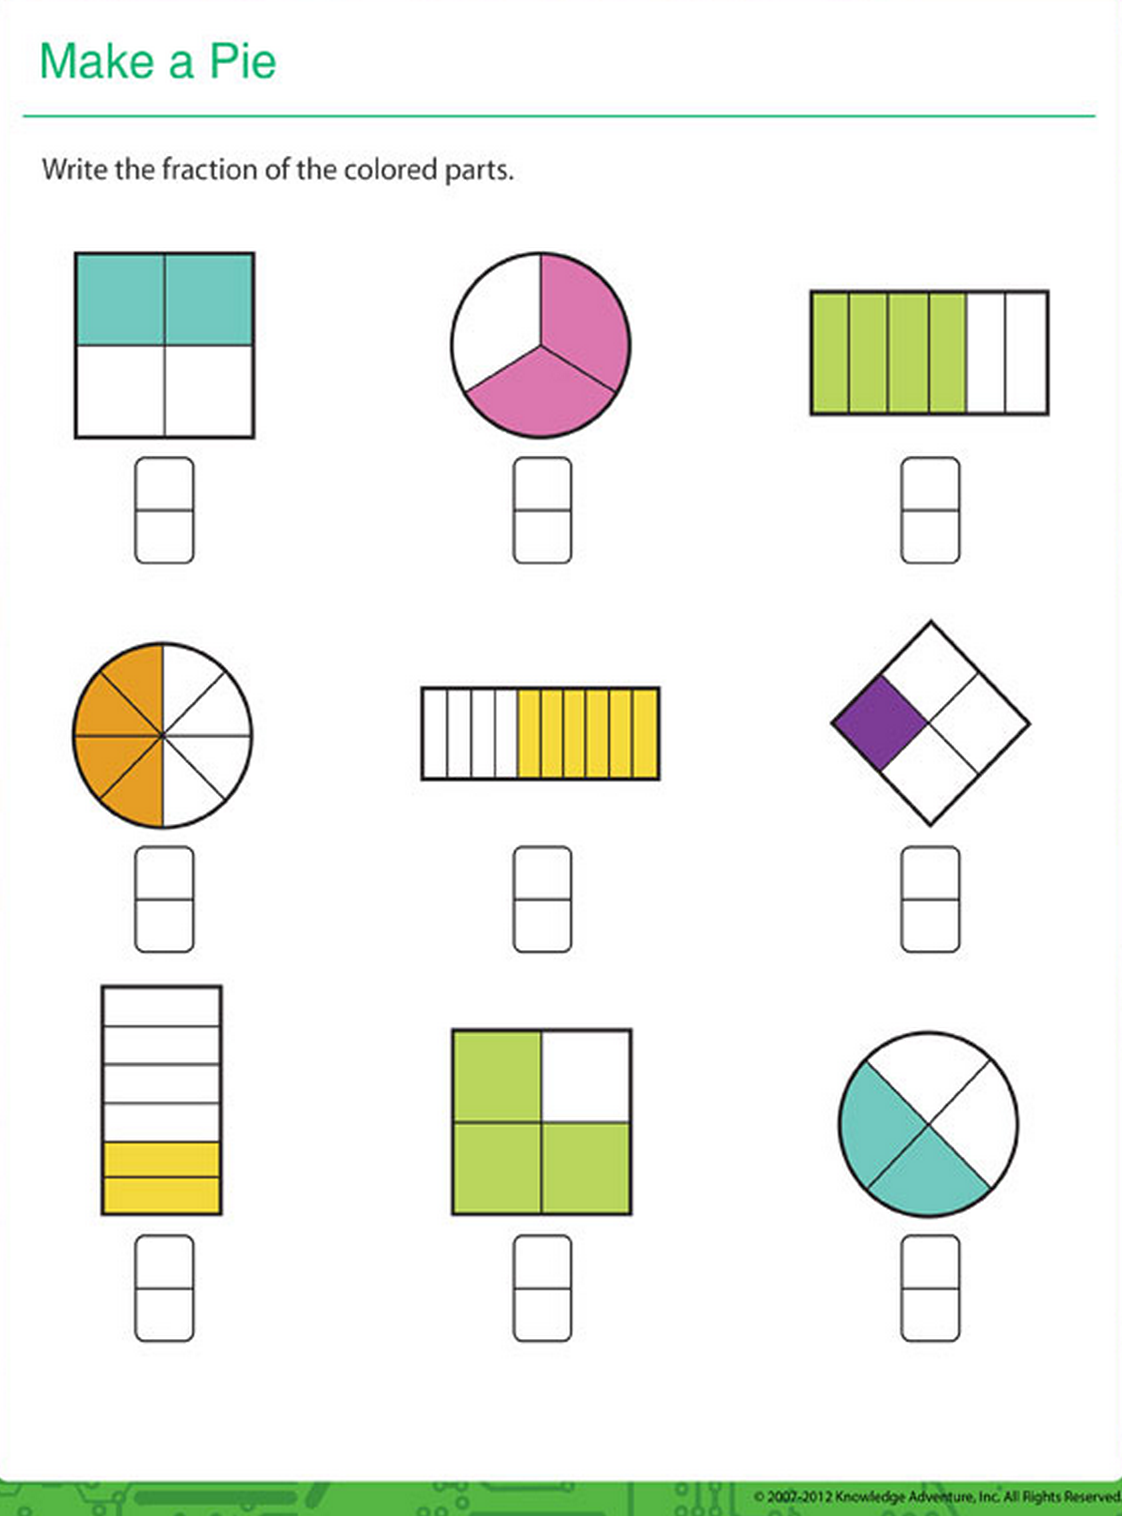 What Is The Fraction For The Colored Parts In Each Shape